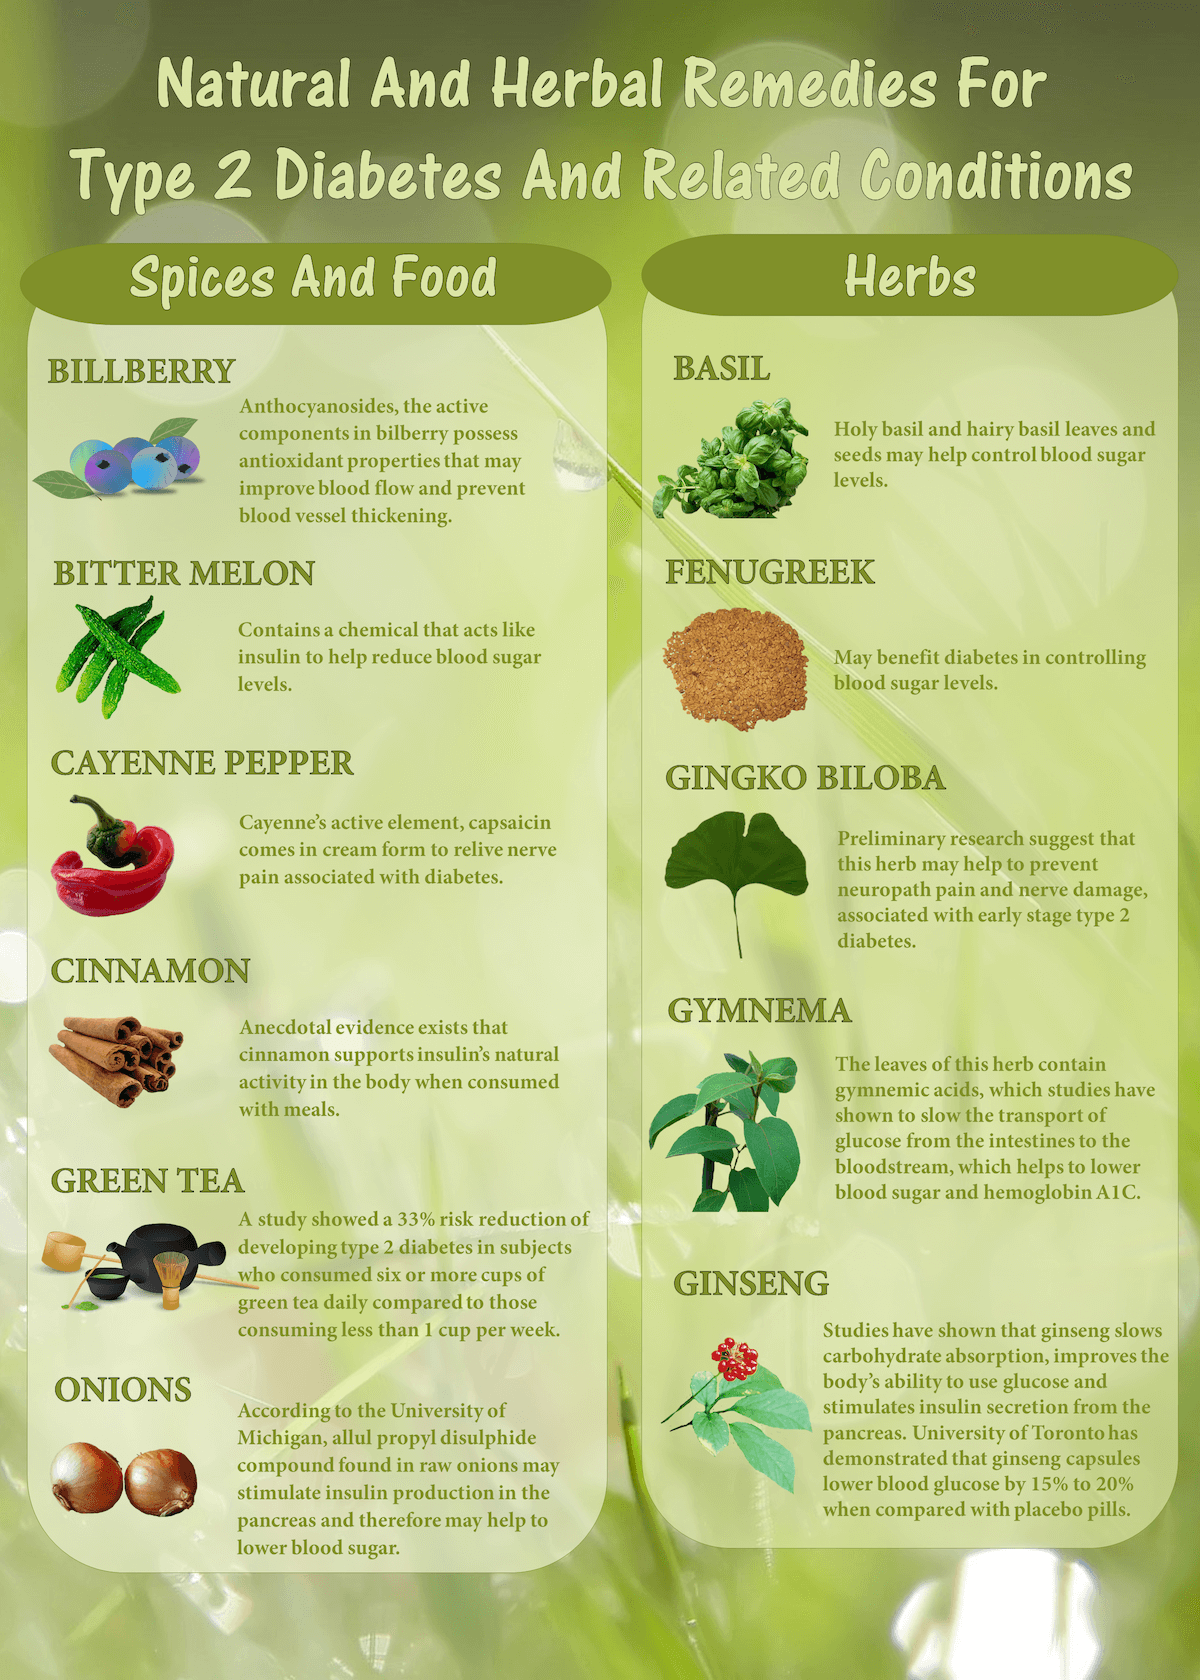 diabetes-natural-remedies-type-2-diabetes-infographic-plaza